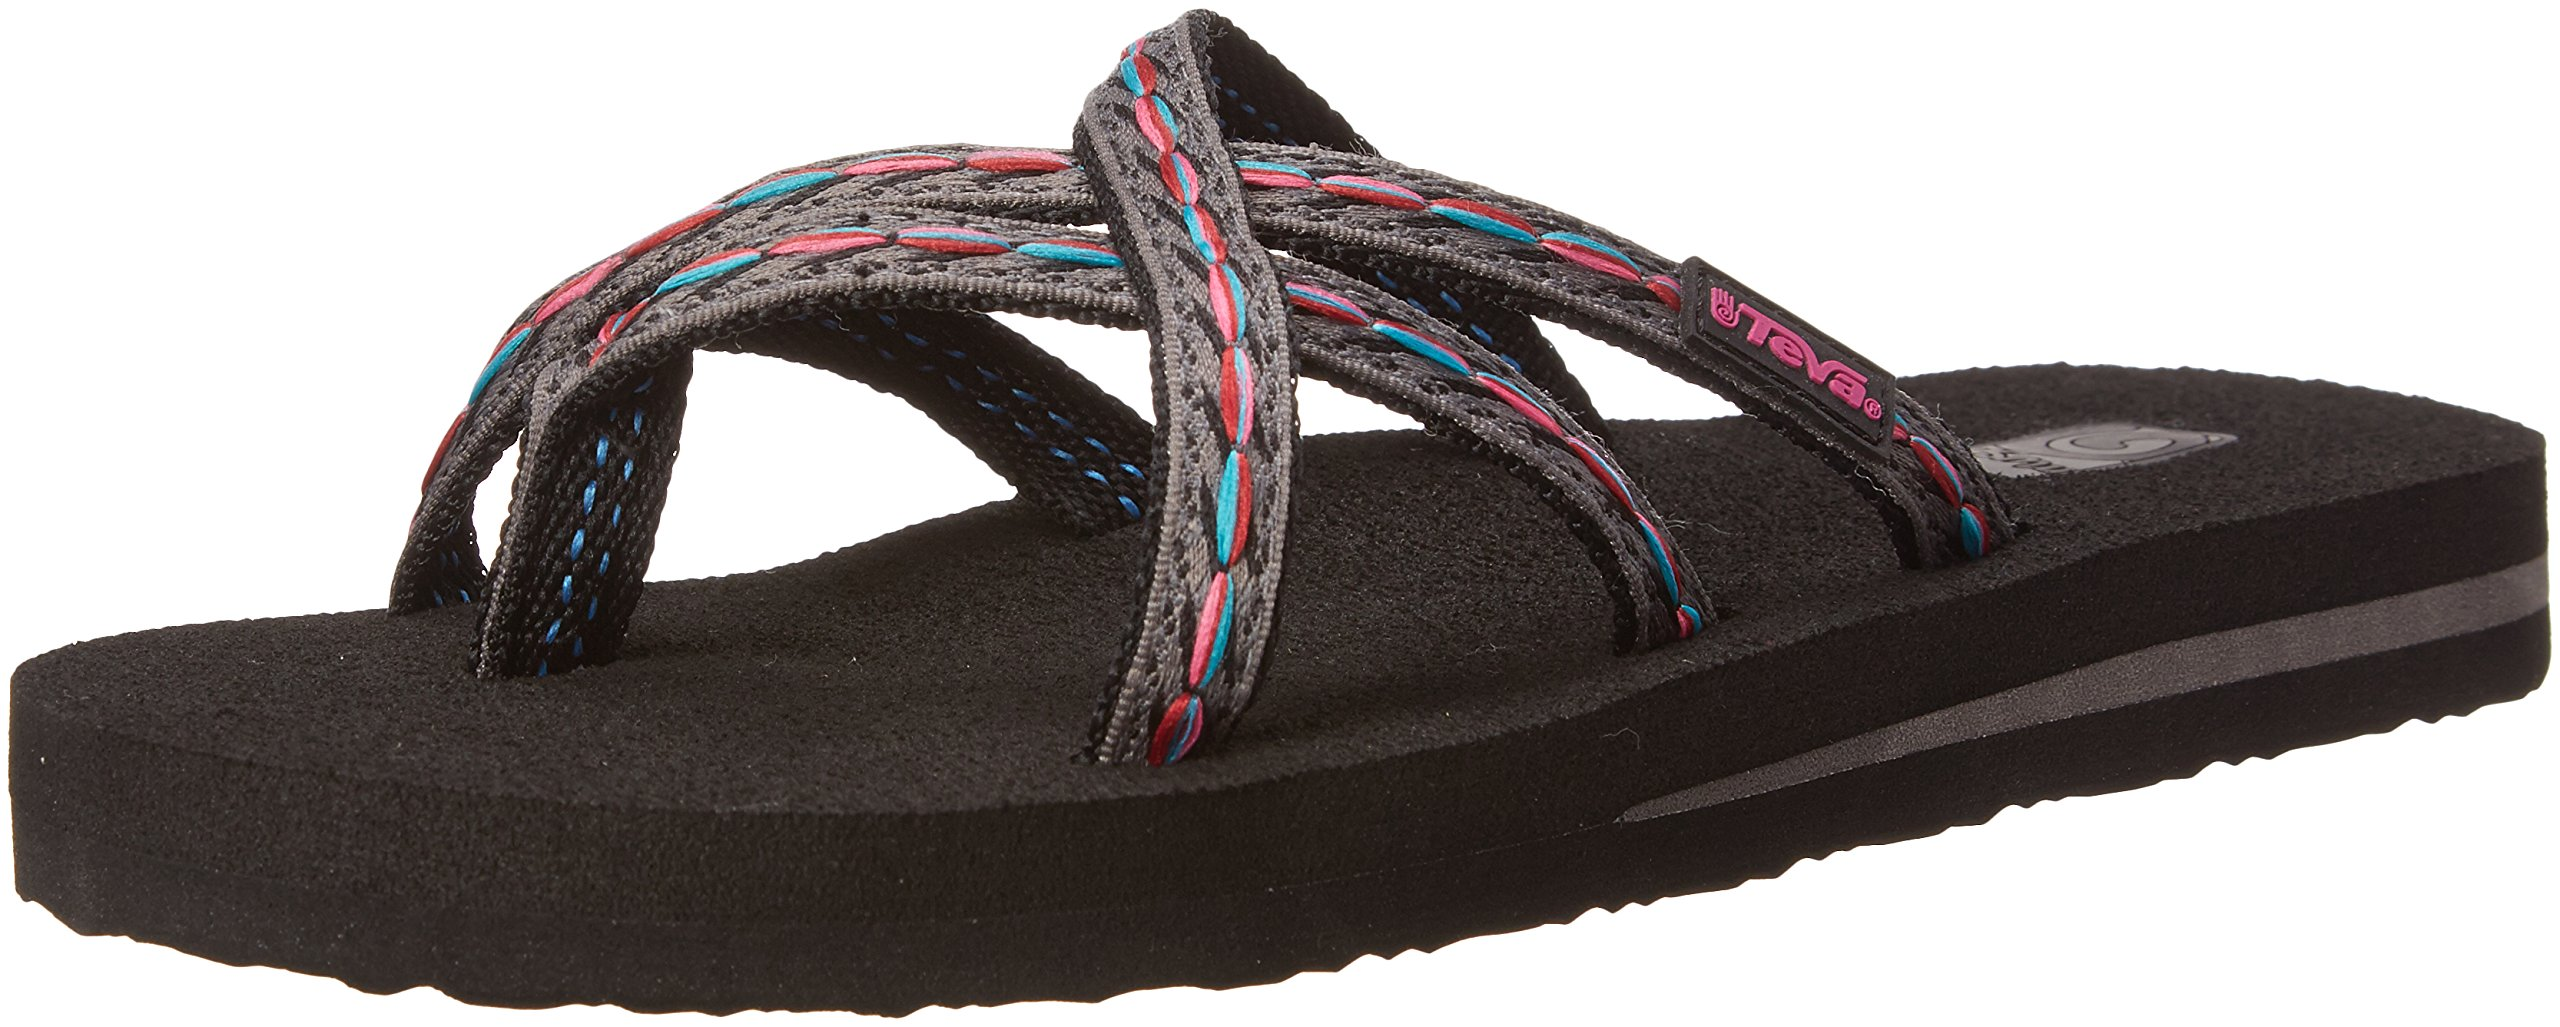 868ad279187076 Galleon - Teva Women s Olowahu 2 Pack Flip Flop